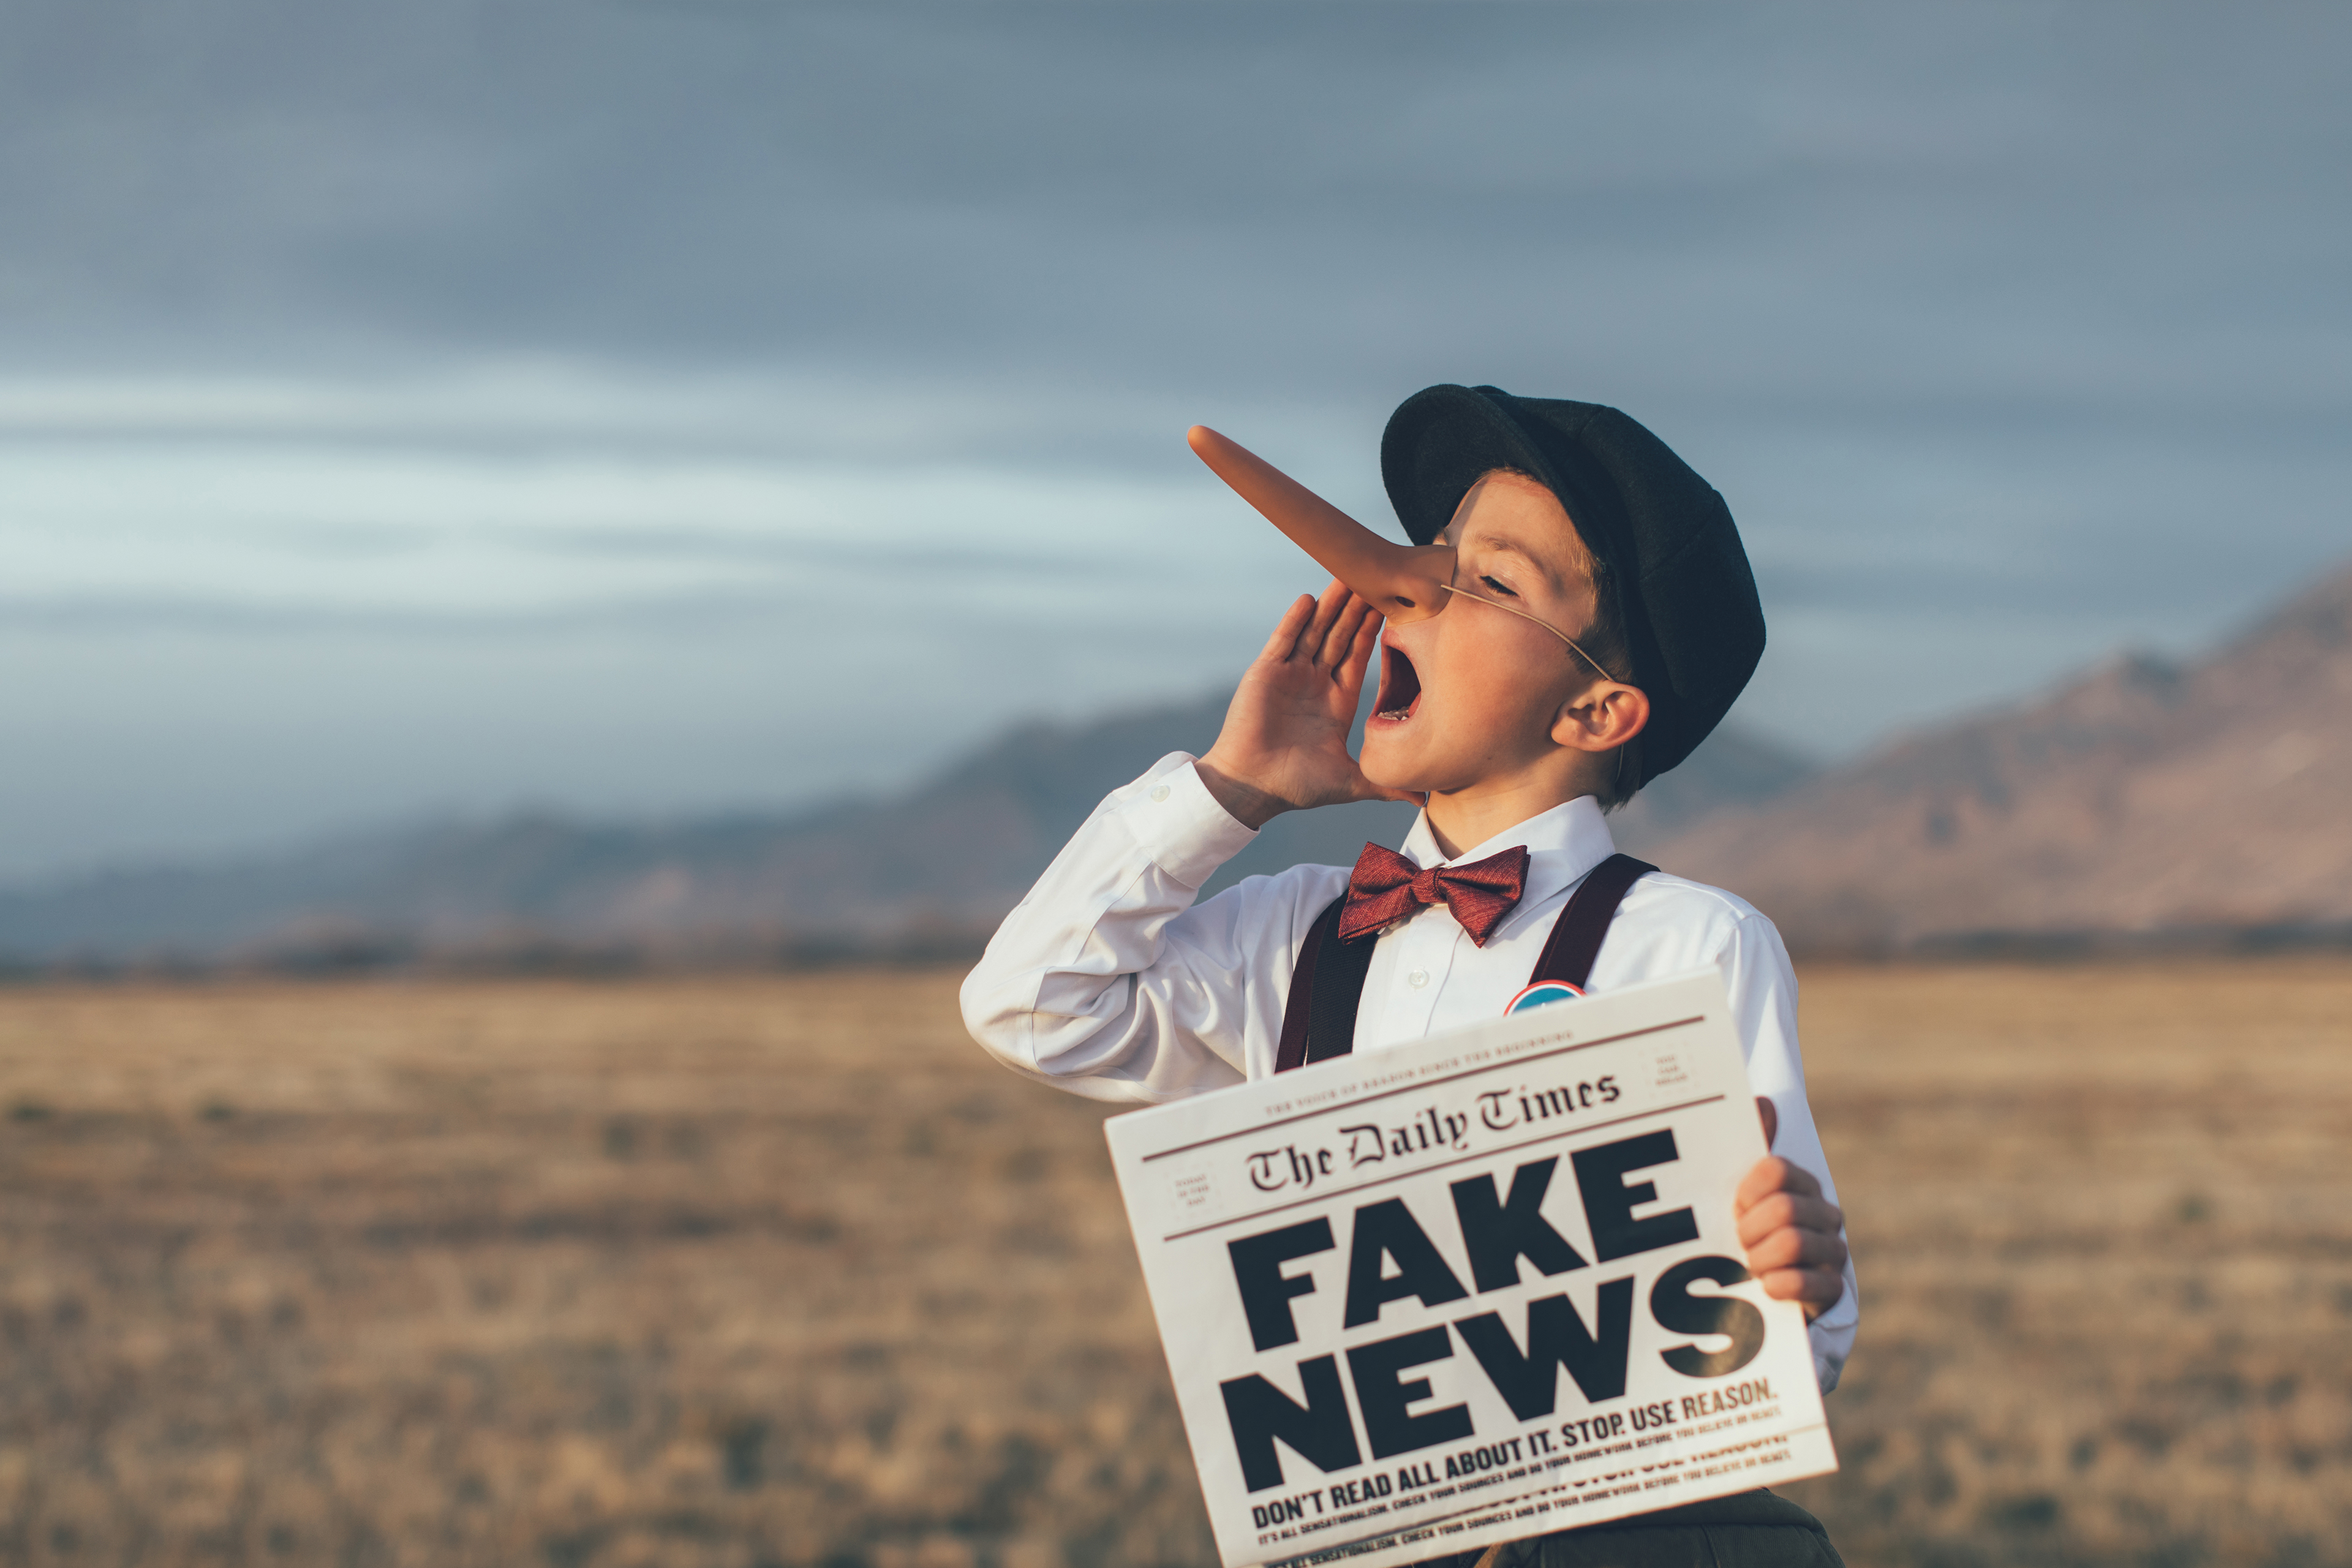 How media organizations can get real and confront fake news | EY - US